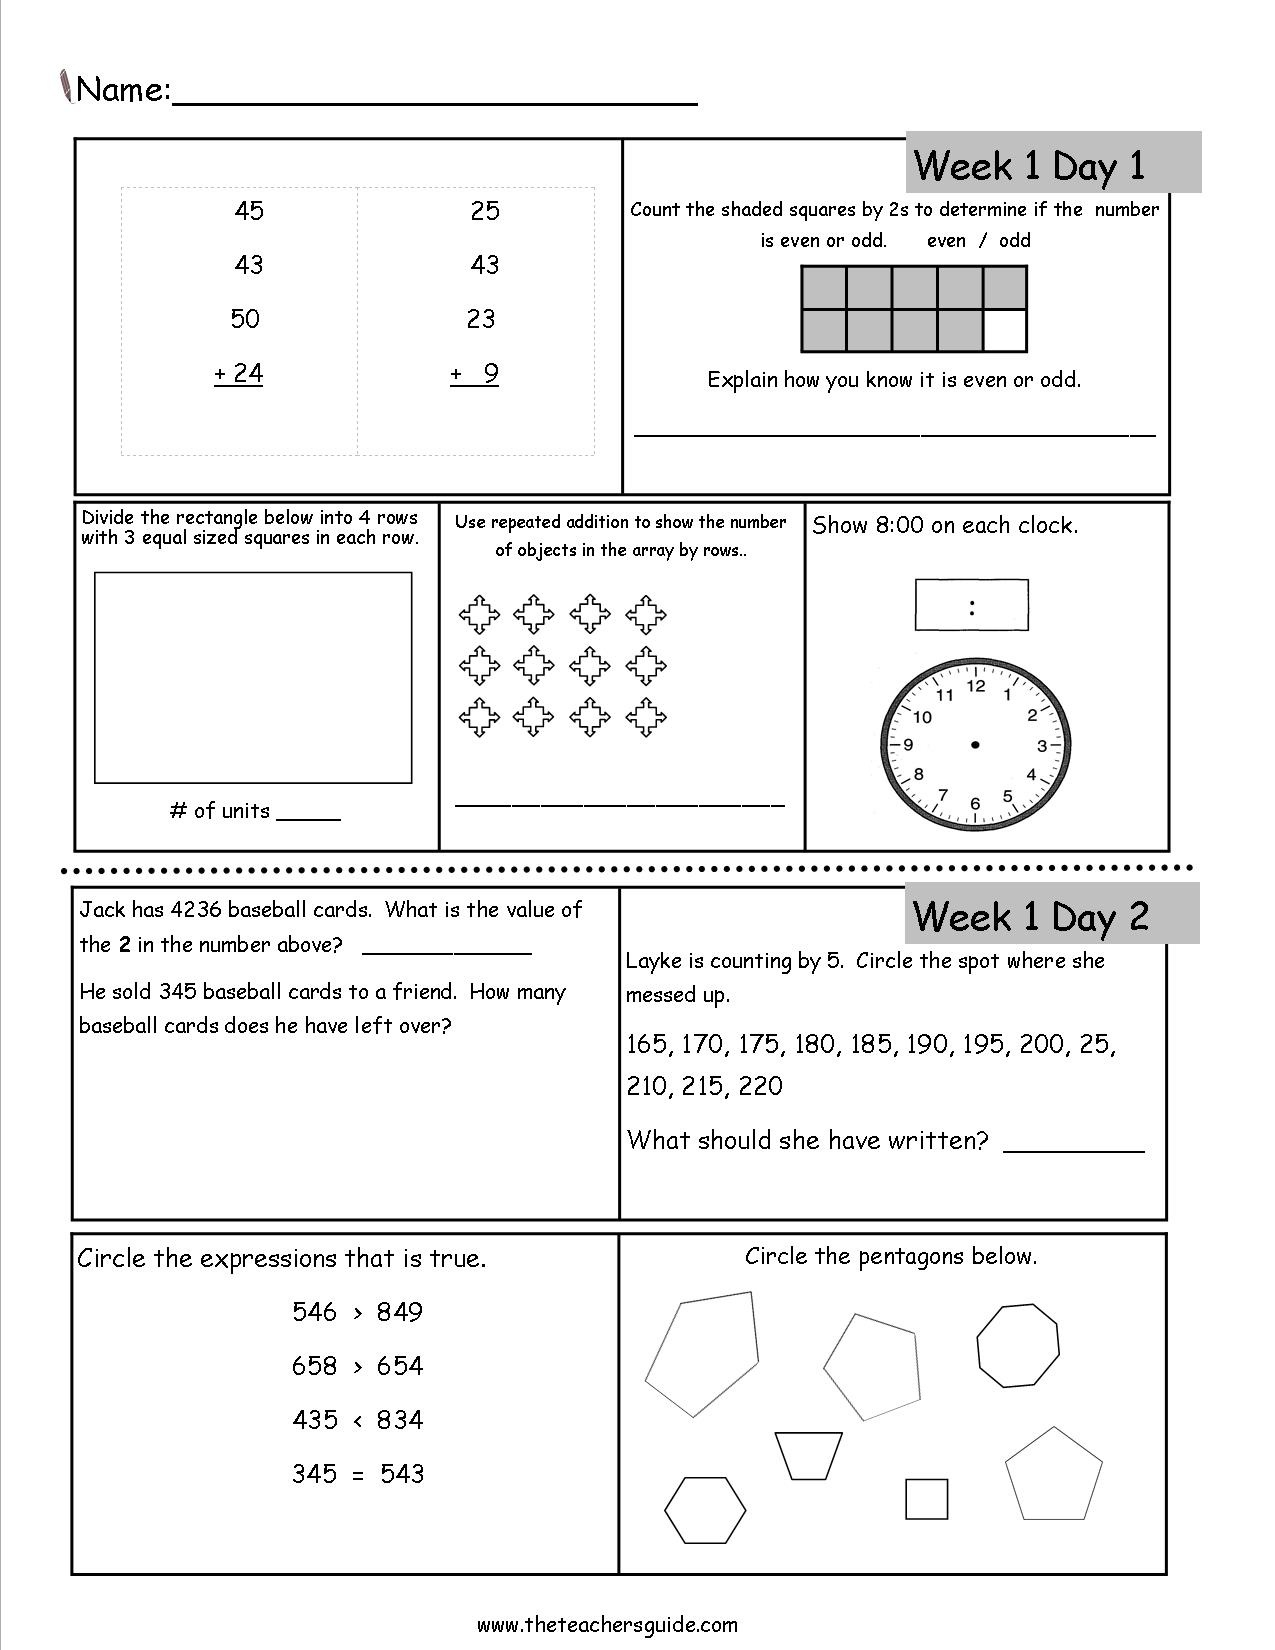 Free 3Rd Grade Daily Math Worksheets - Free Printable Common Core Math Worksheets For Third Grade